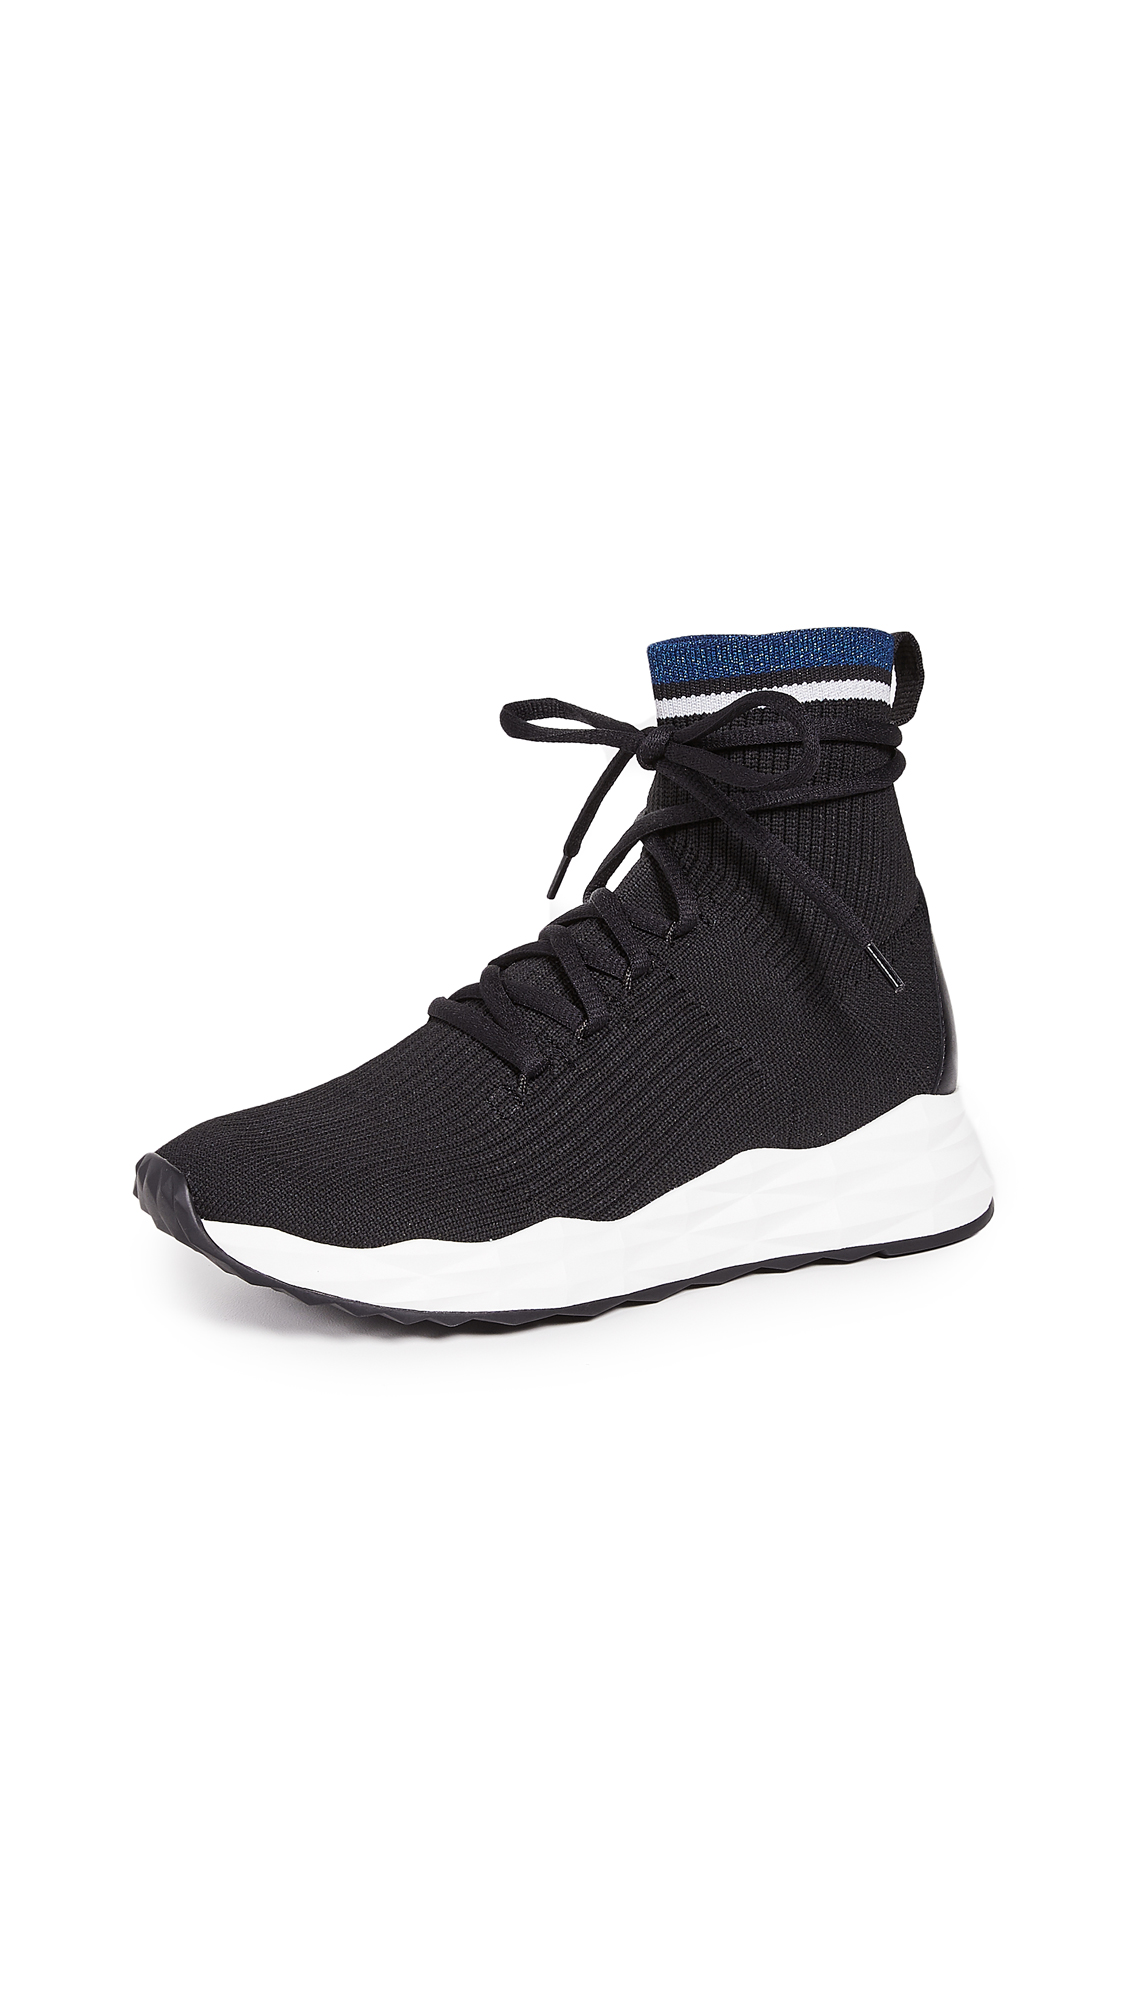 Ash Sense Knit Runner Sneakers - Black/Silver/Blue/Black